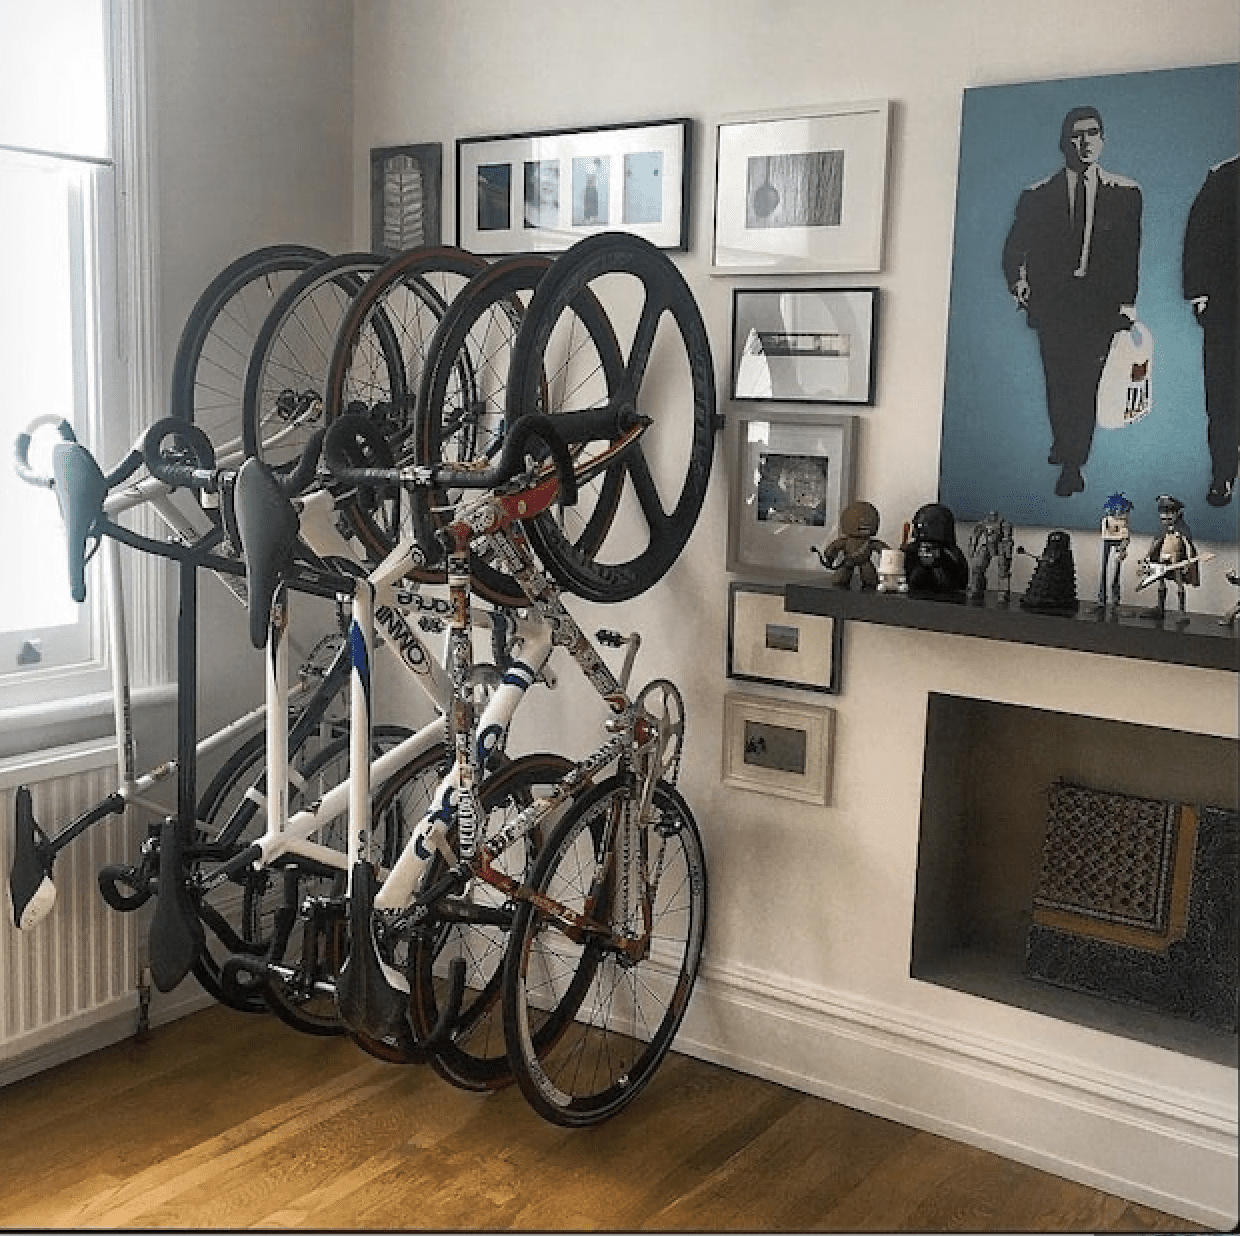 4 bikes hanging vertically inside a house